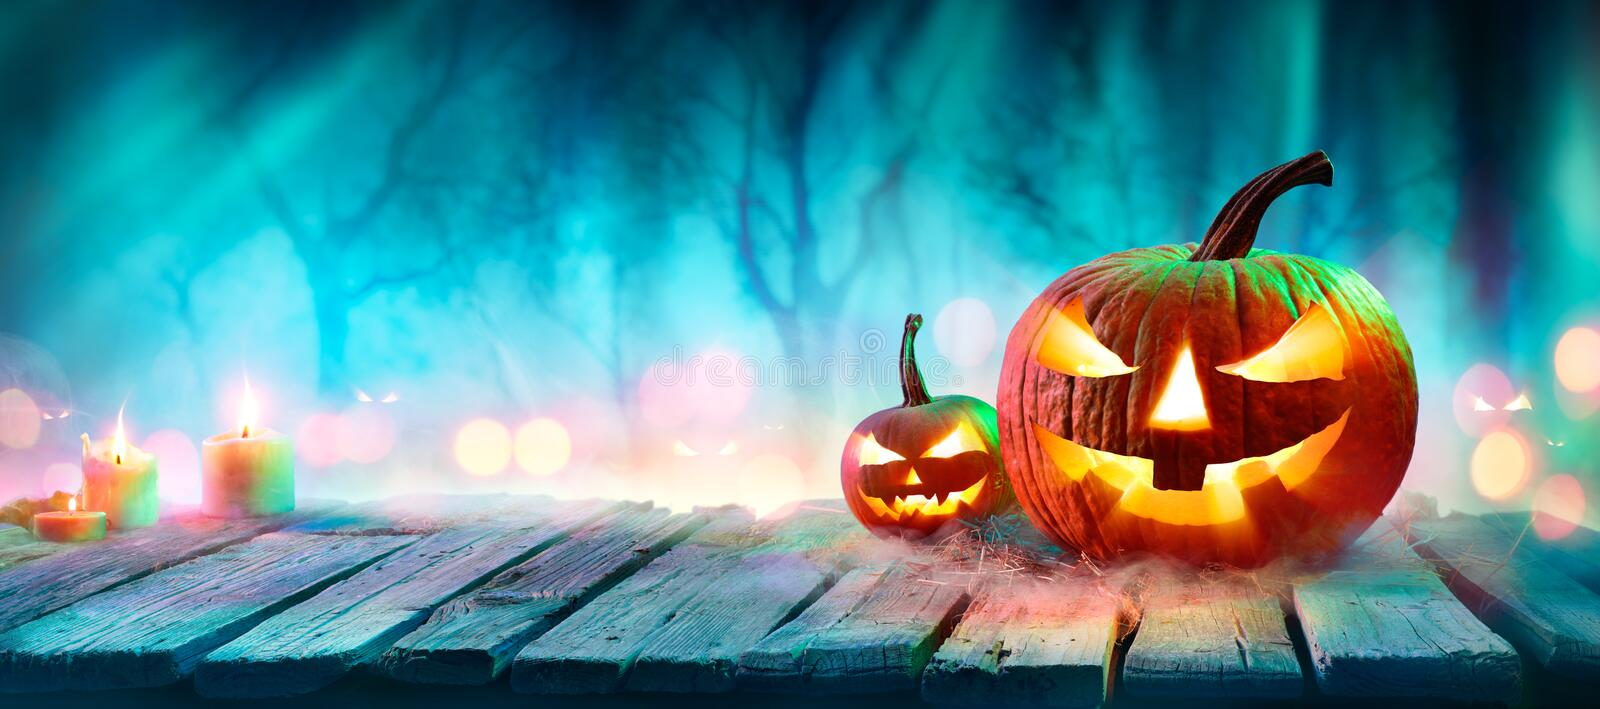 Jack O' Lanterns In Spooky Forest With Ghost Lights. Jack O' Lanterns In Spooky Forest With Ghost Lights - Halloween Background royalty free stock photos